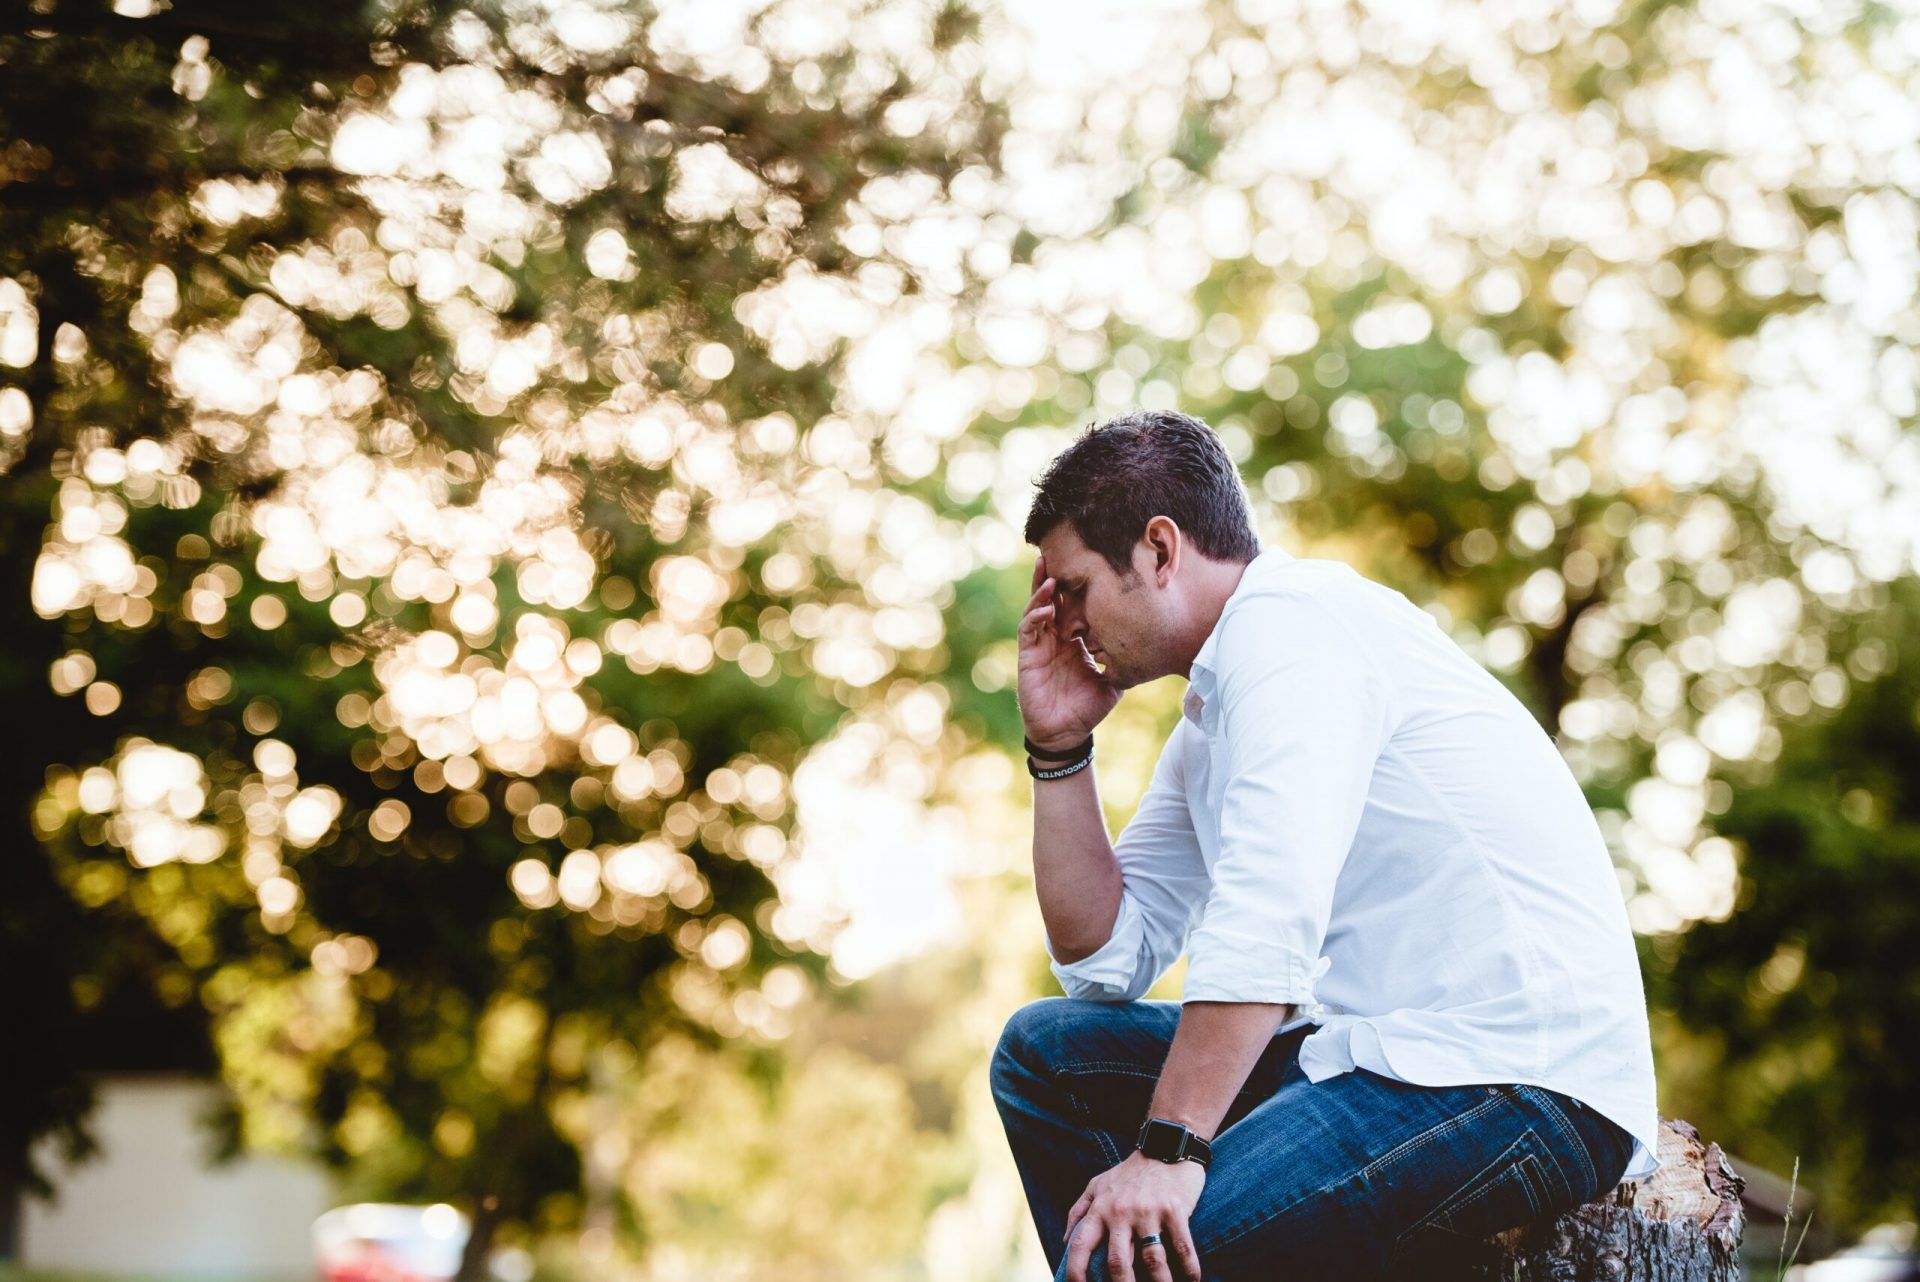 Man sitting on a stump holding his head as he struggles with anxiety, aches and pains everywhere.